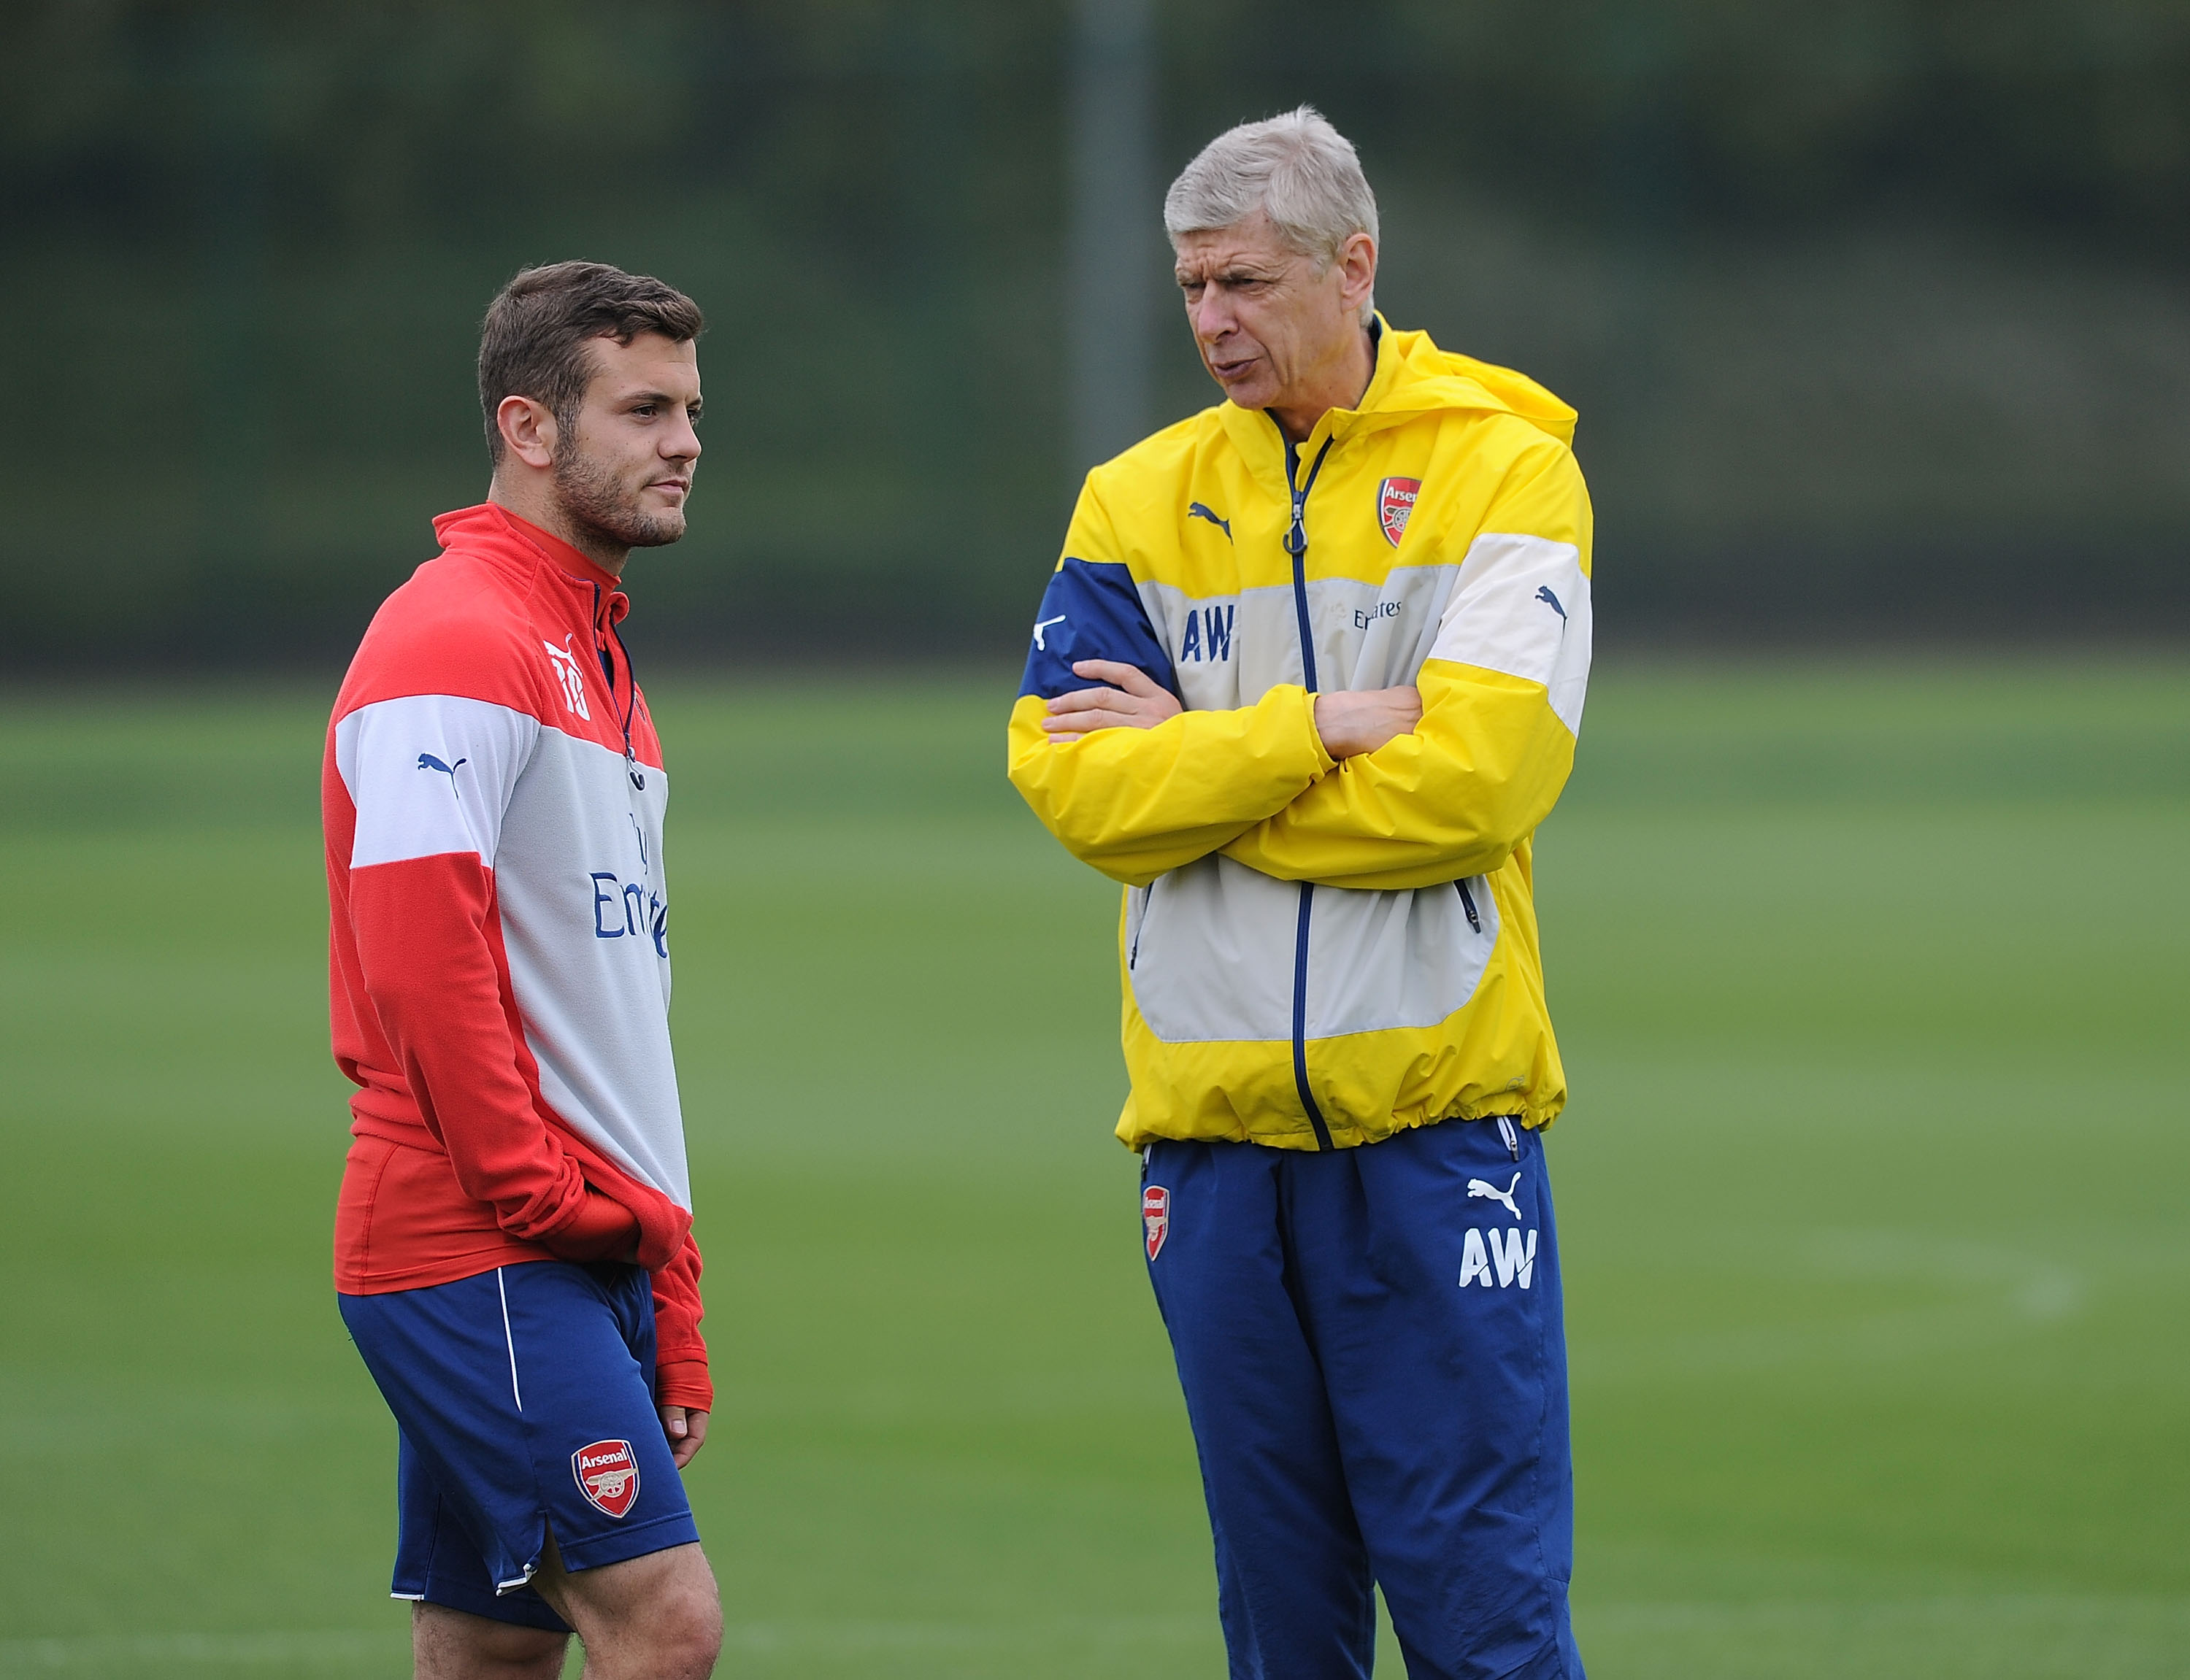 Arsenal manager Arsene Wenger predicts Jack Wilshere will one day be captain and manager of the club